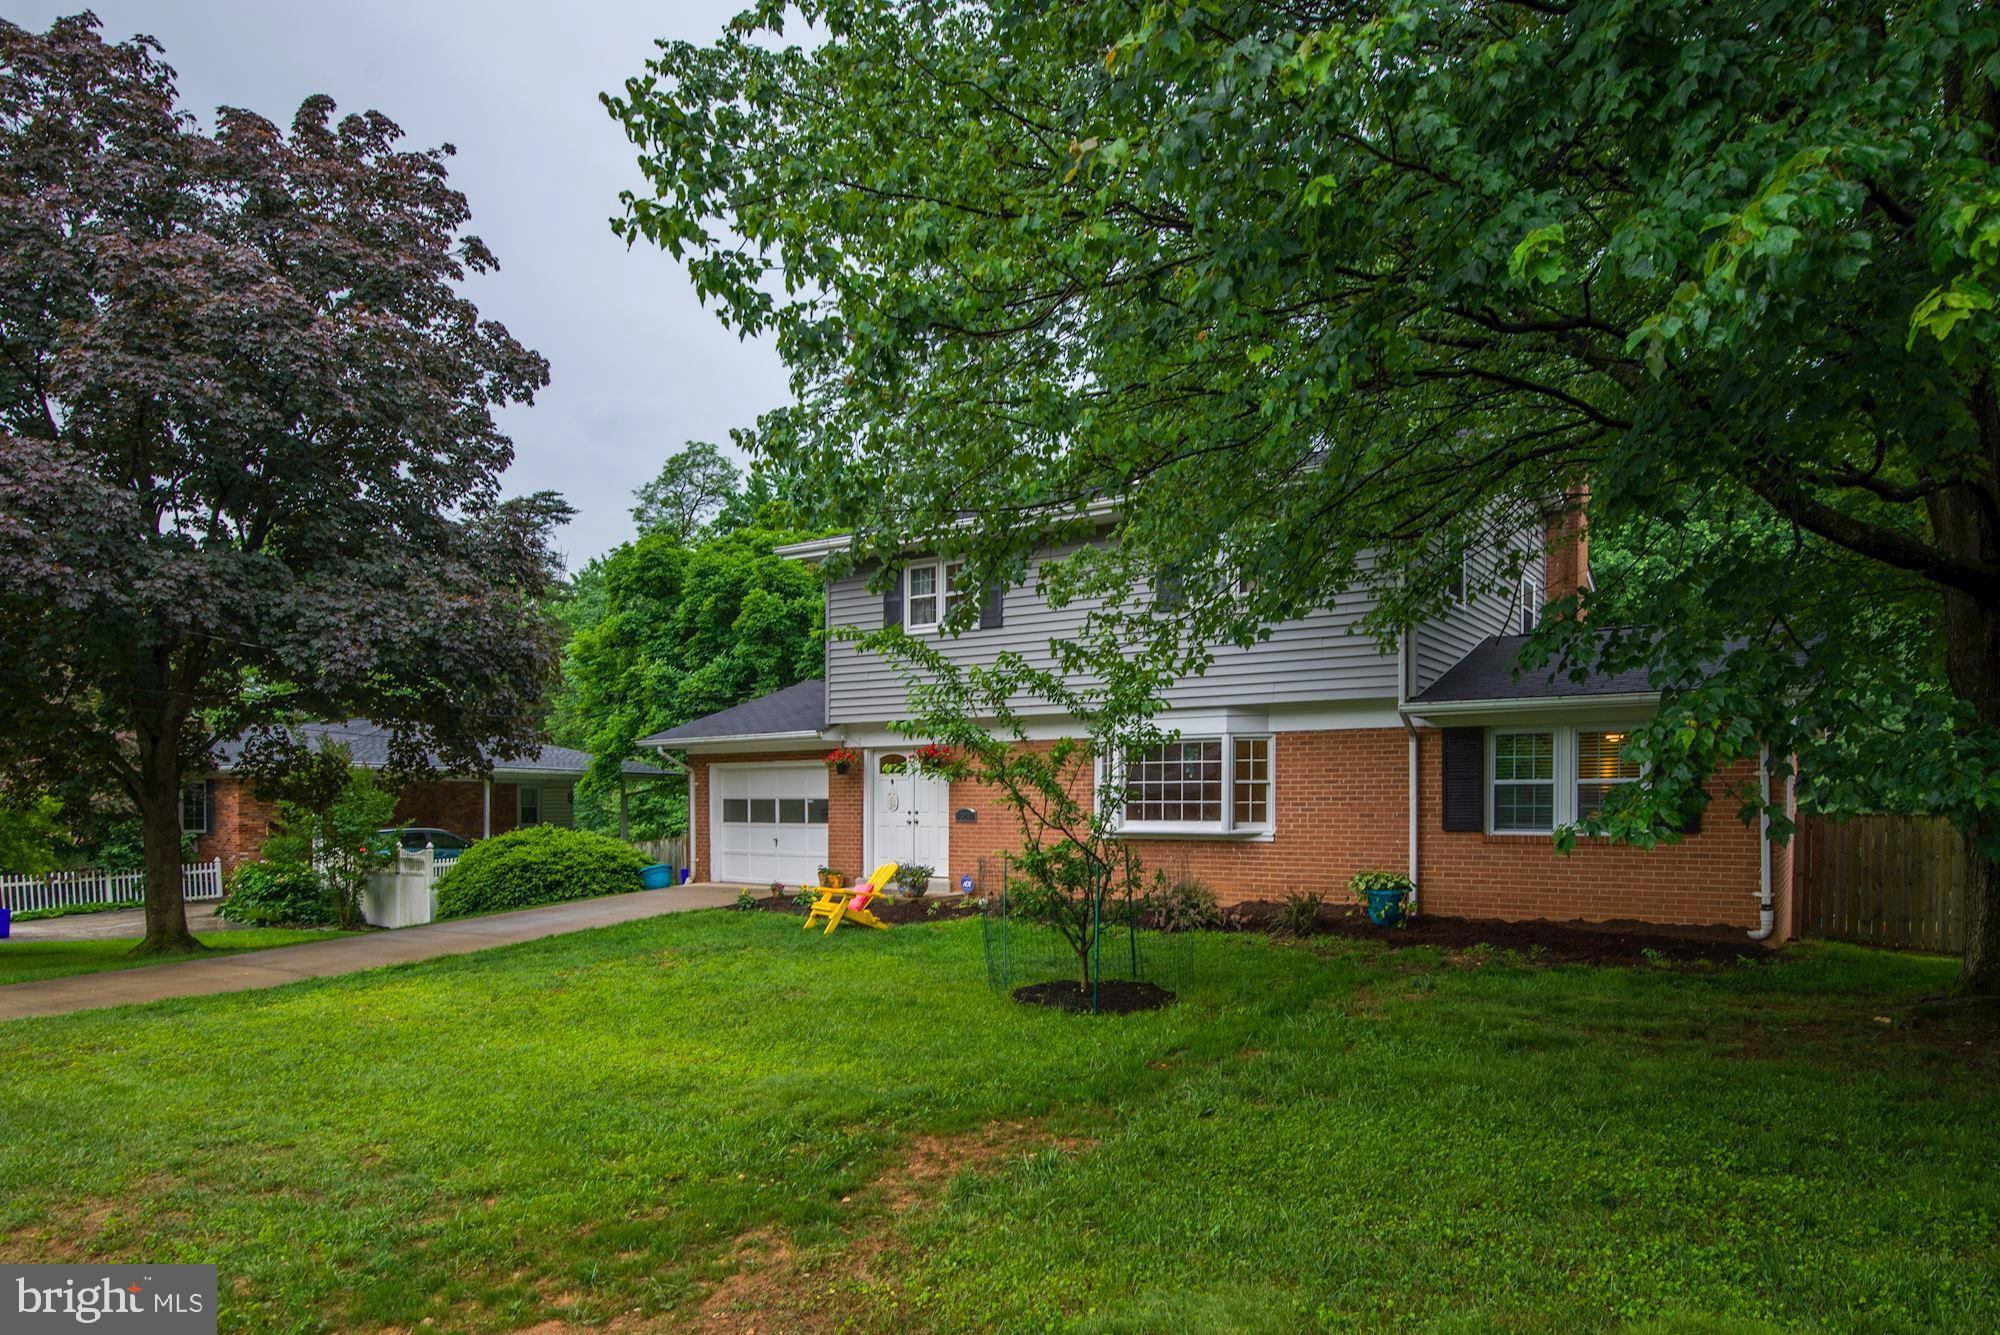 13200 ANDREW DRIVE, SILVER SPRING, MD 20904